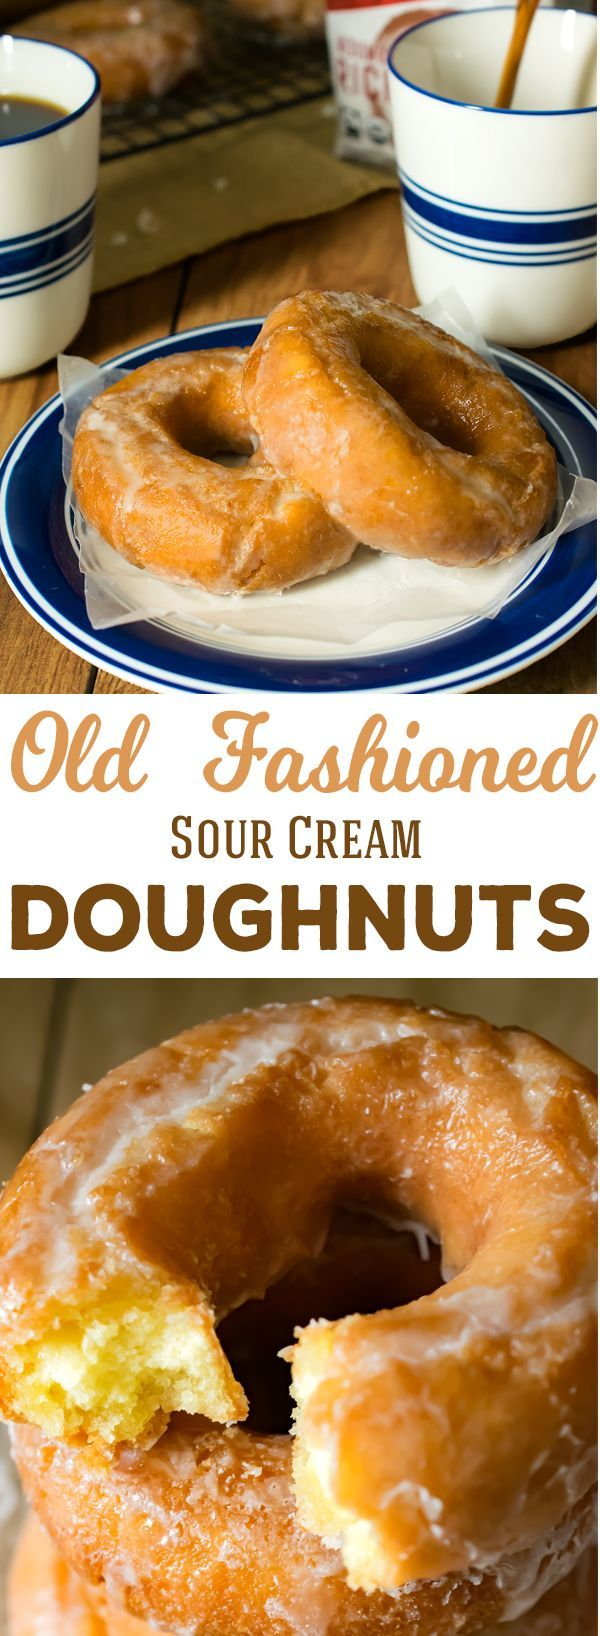 Classic Sour Cream Doughnut Recipe - Soft and cakey on the inside with a flakey sweet glaze on the outside, these old fashioned doughnuts are just like the doughnut shop! #SeattlesBestCoffee #ad #BreakfastBlend